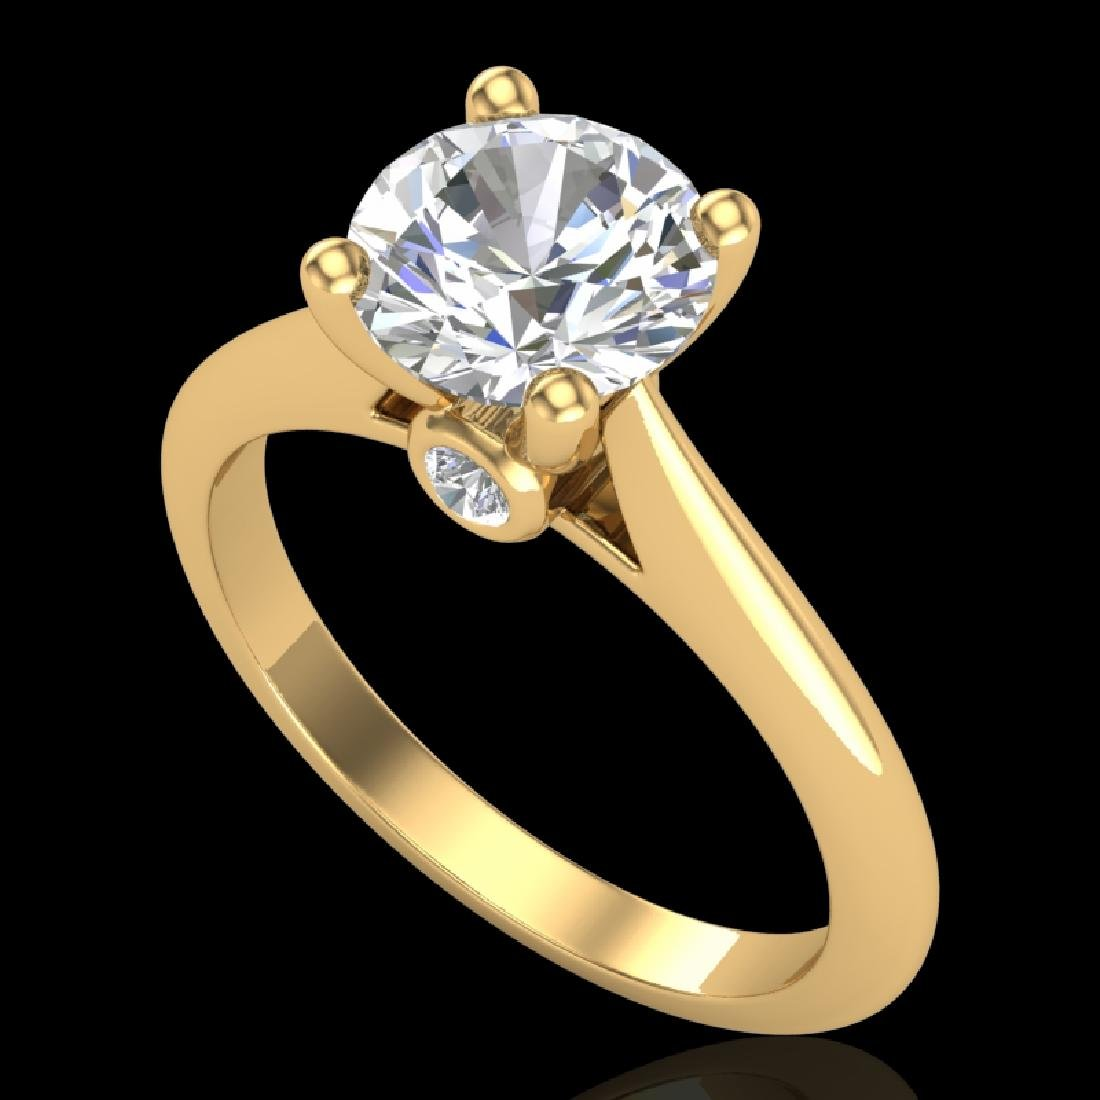 1.6 CTW VS/SI Diamond Art Deco Ring 18K Yellow Gold